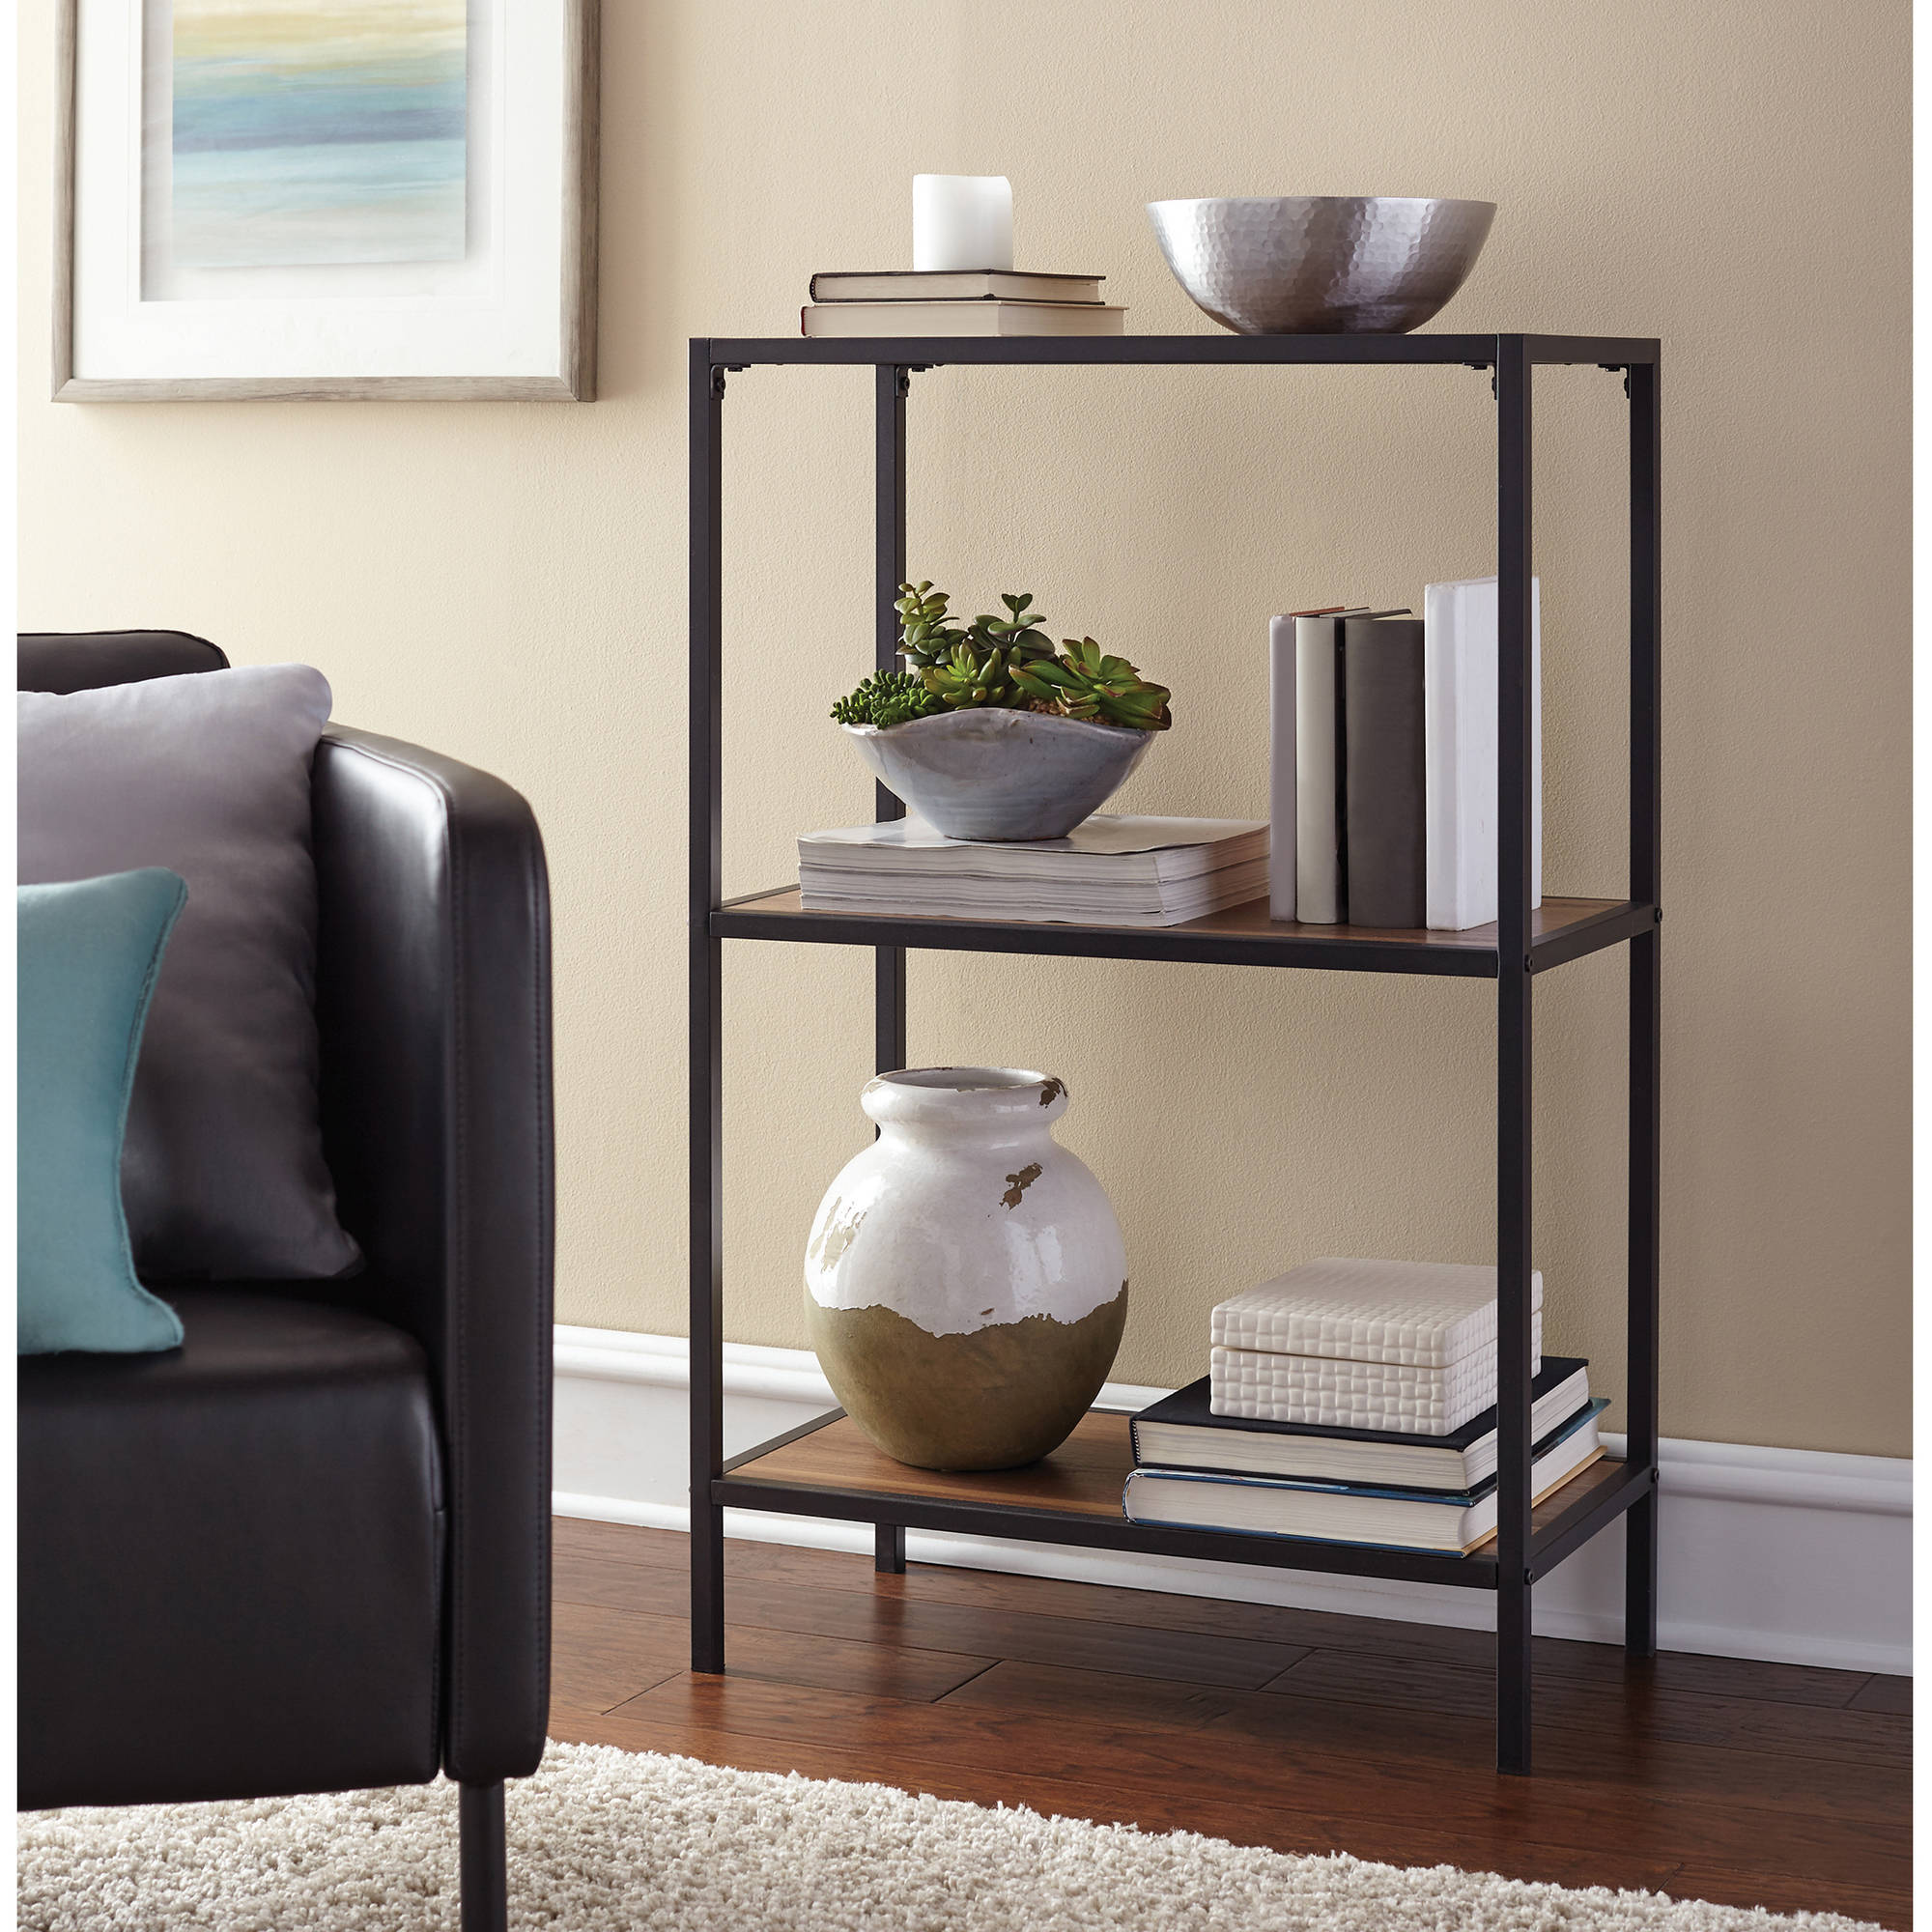 Mainstays Metro 3 Shelf Bookcase Warm Ash Finish Walmart